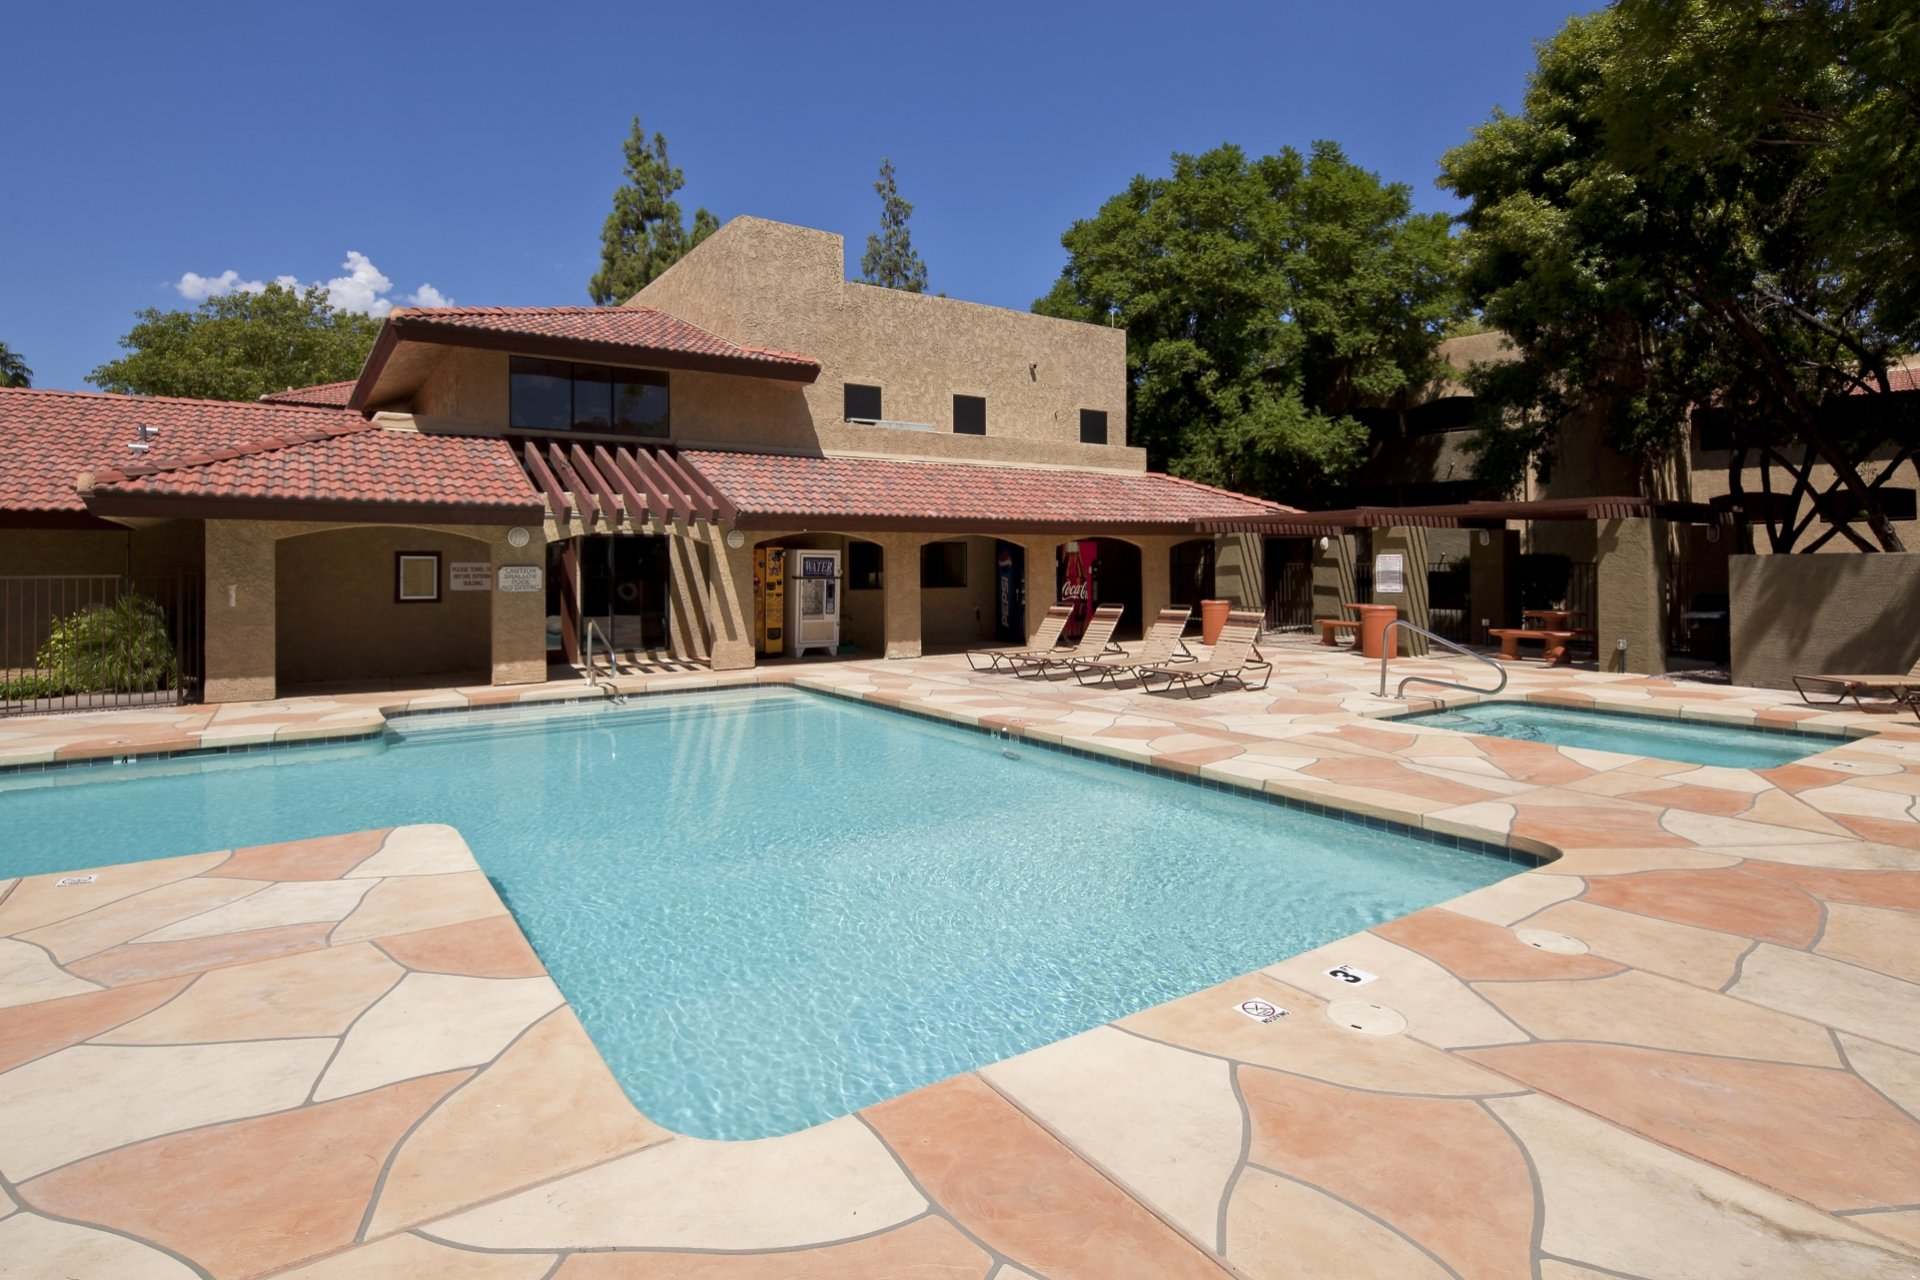 Villa Toscana Apartments Phoenix, AZ pool, hot tub and patio